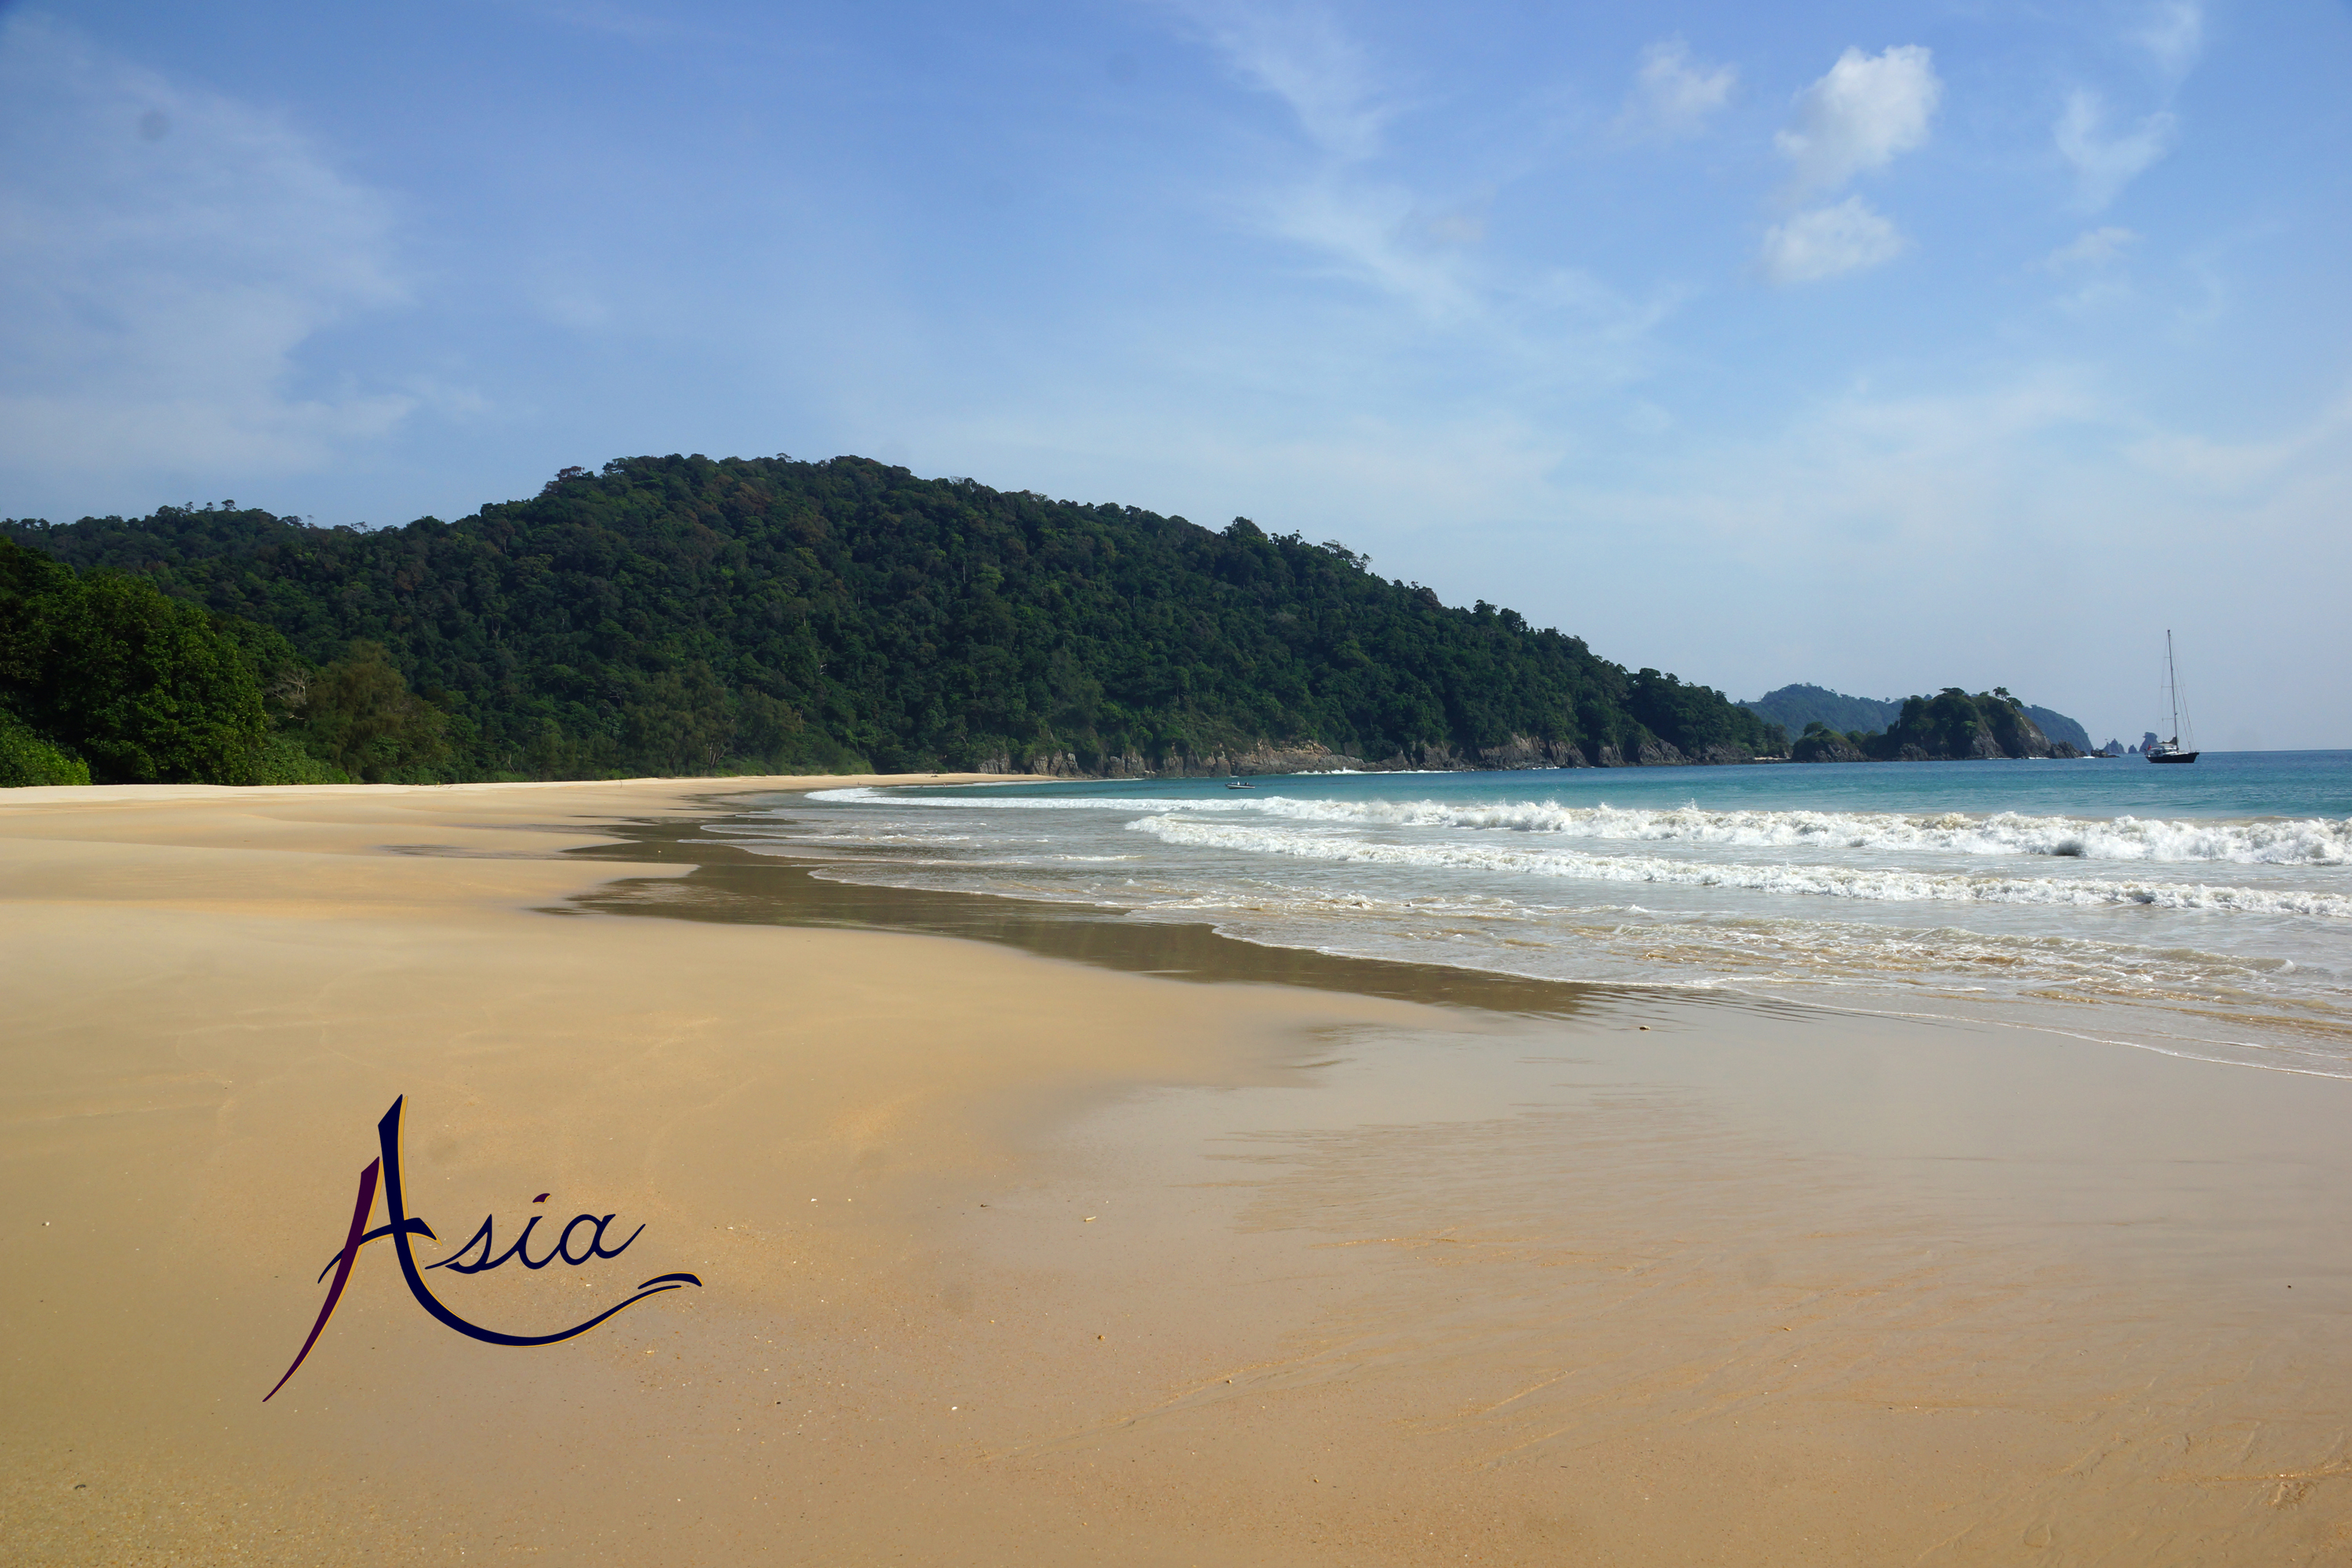 Miles of beautiful deserted beaches in Burma's Mergui Archipelago.